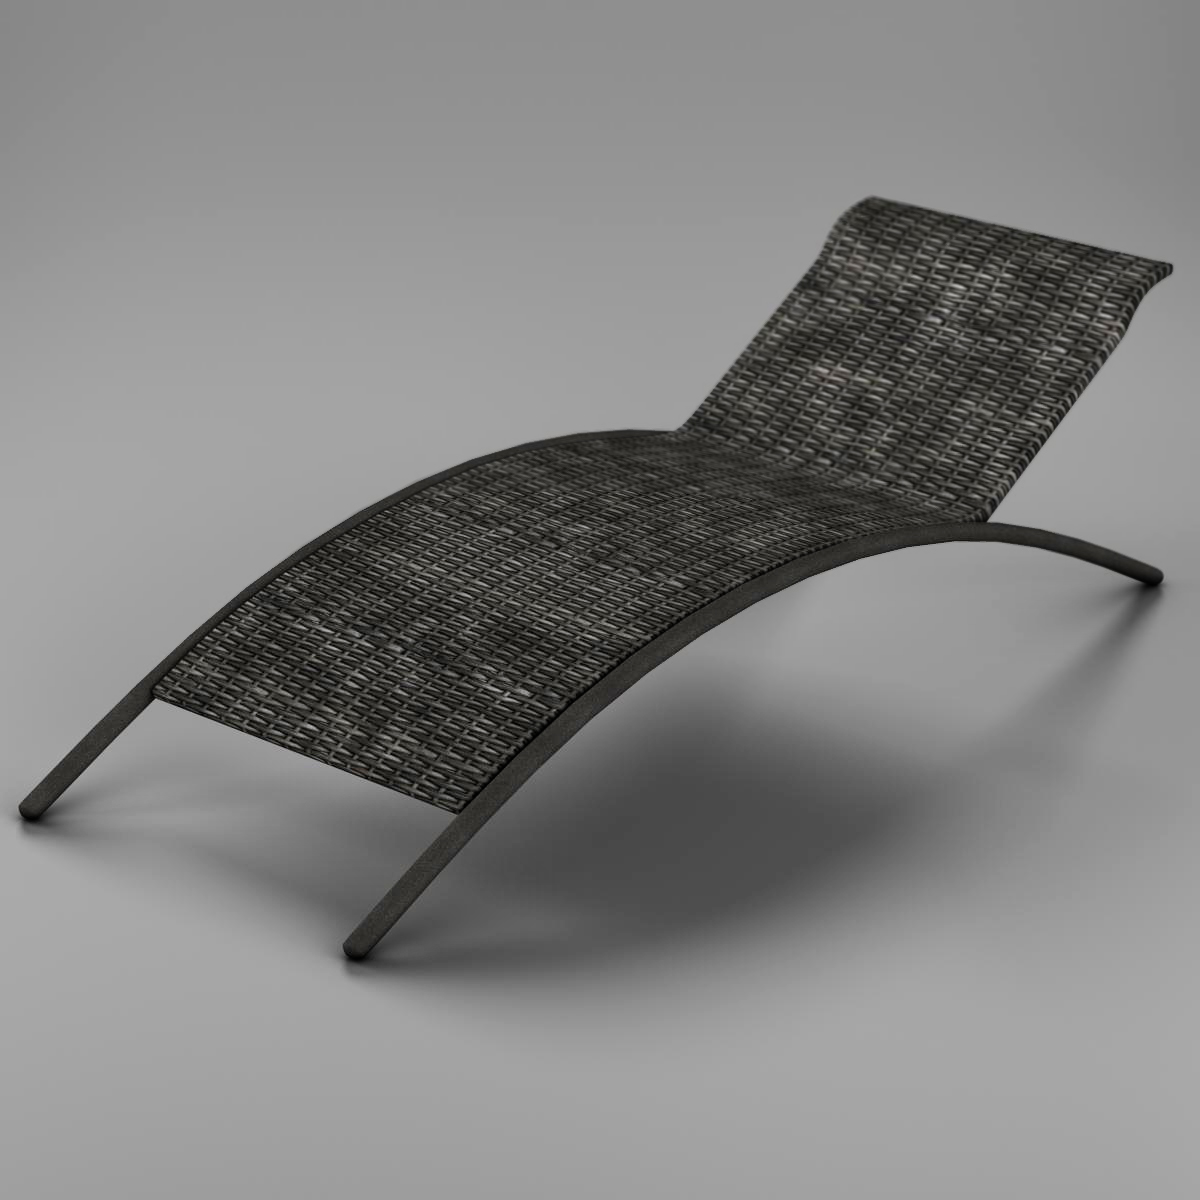 sunbed chair 3d model 3ds max fbx c4d ma mb obj 162639